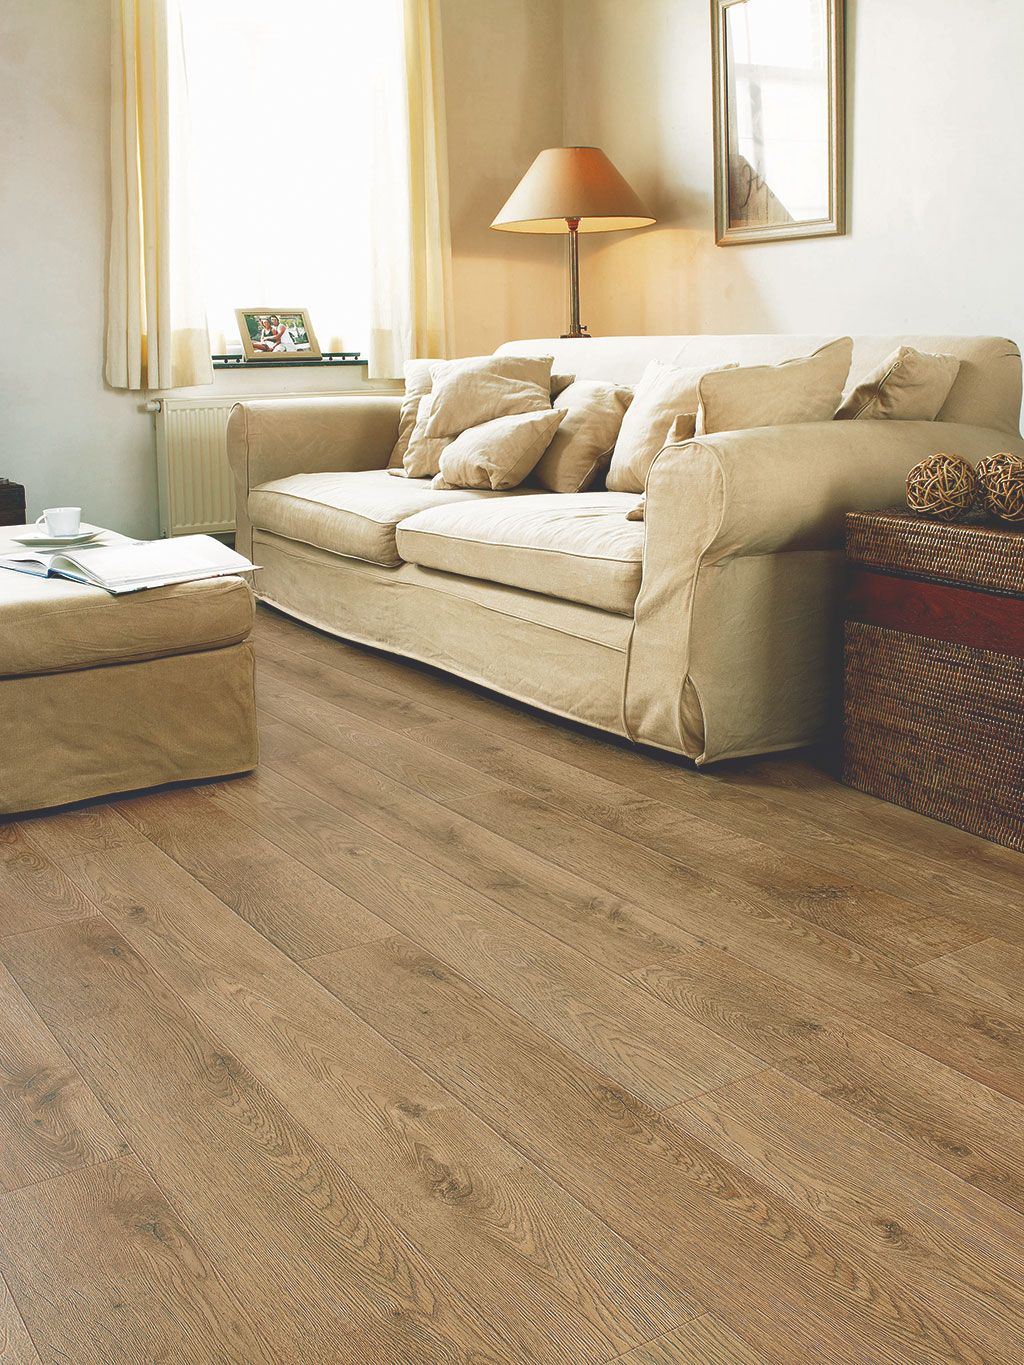 How to choose the ideal living room floor Wood laminate